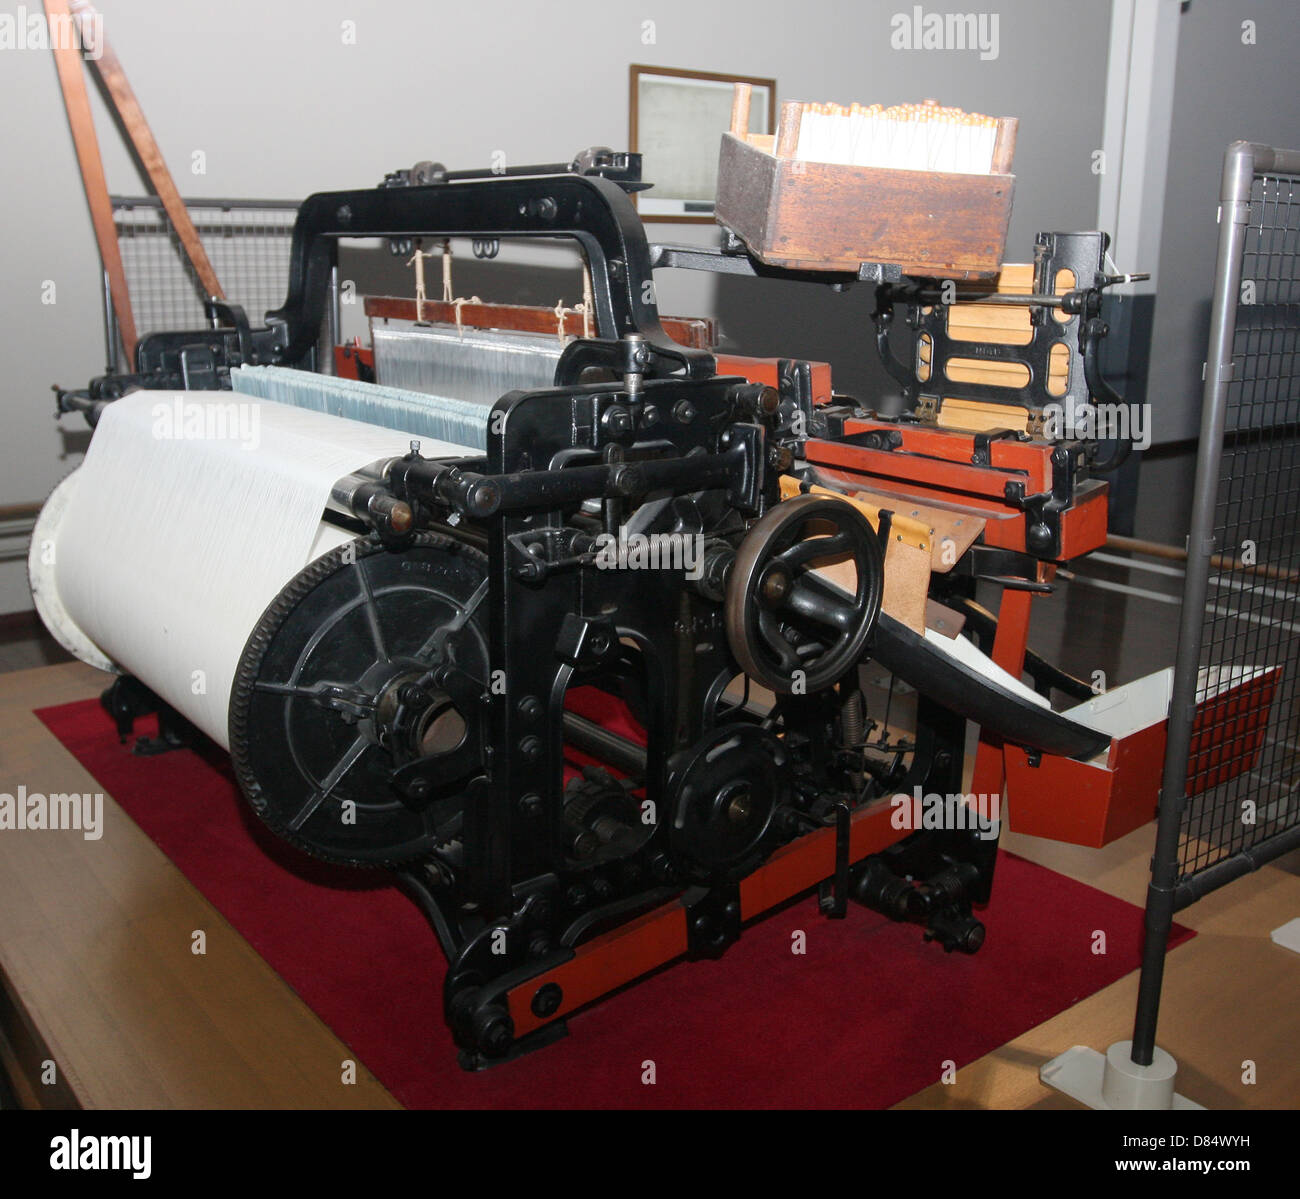 Automatic Loom Stock Photos & Automatic Loom Stock Images